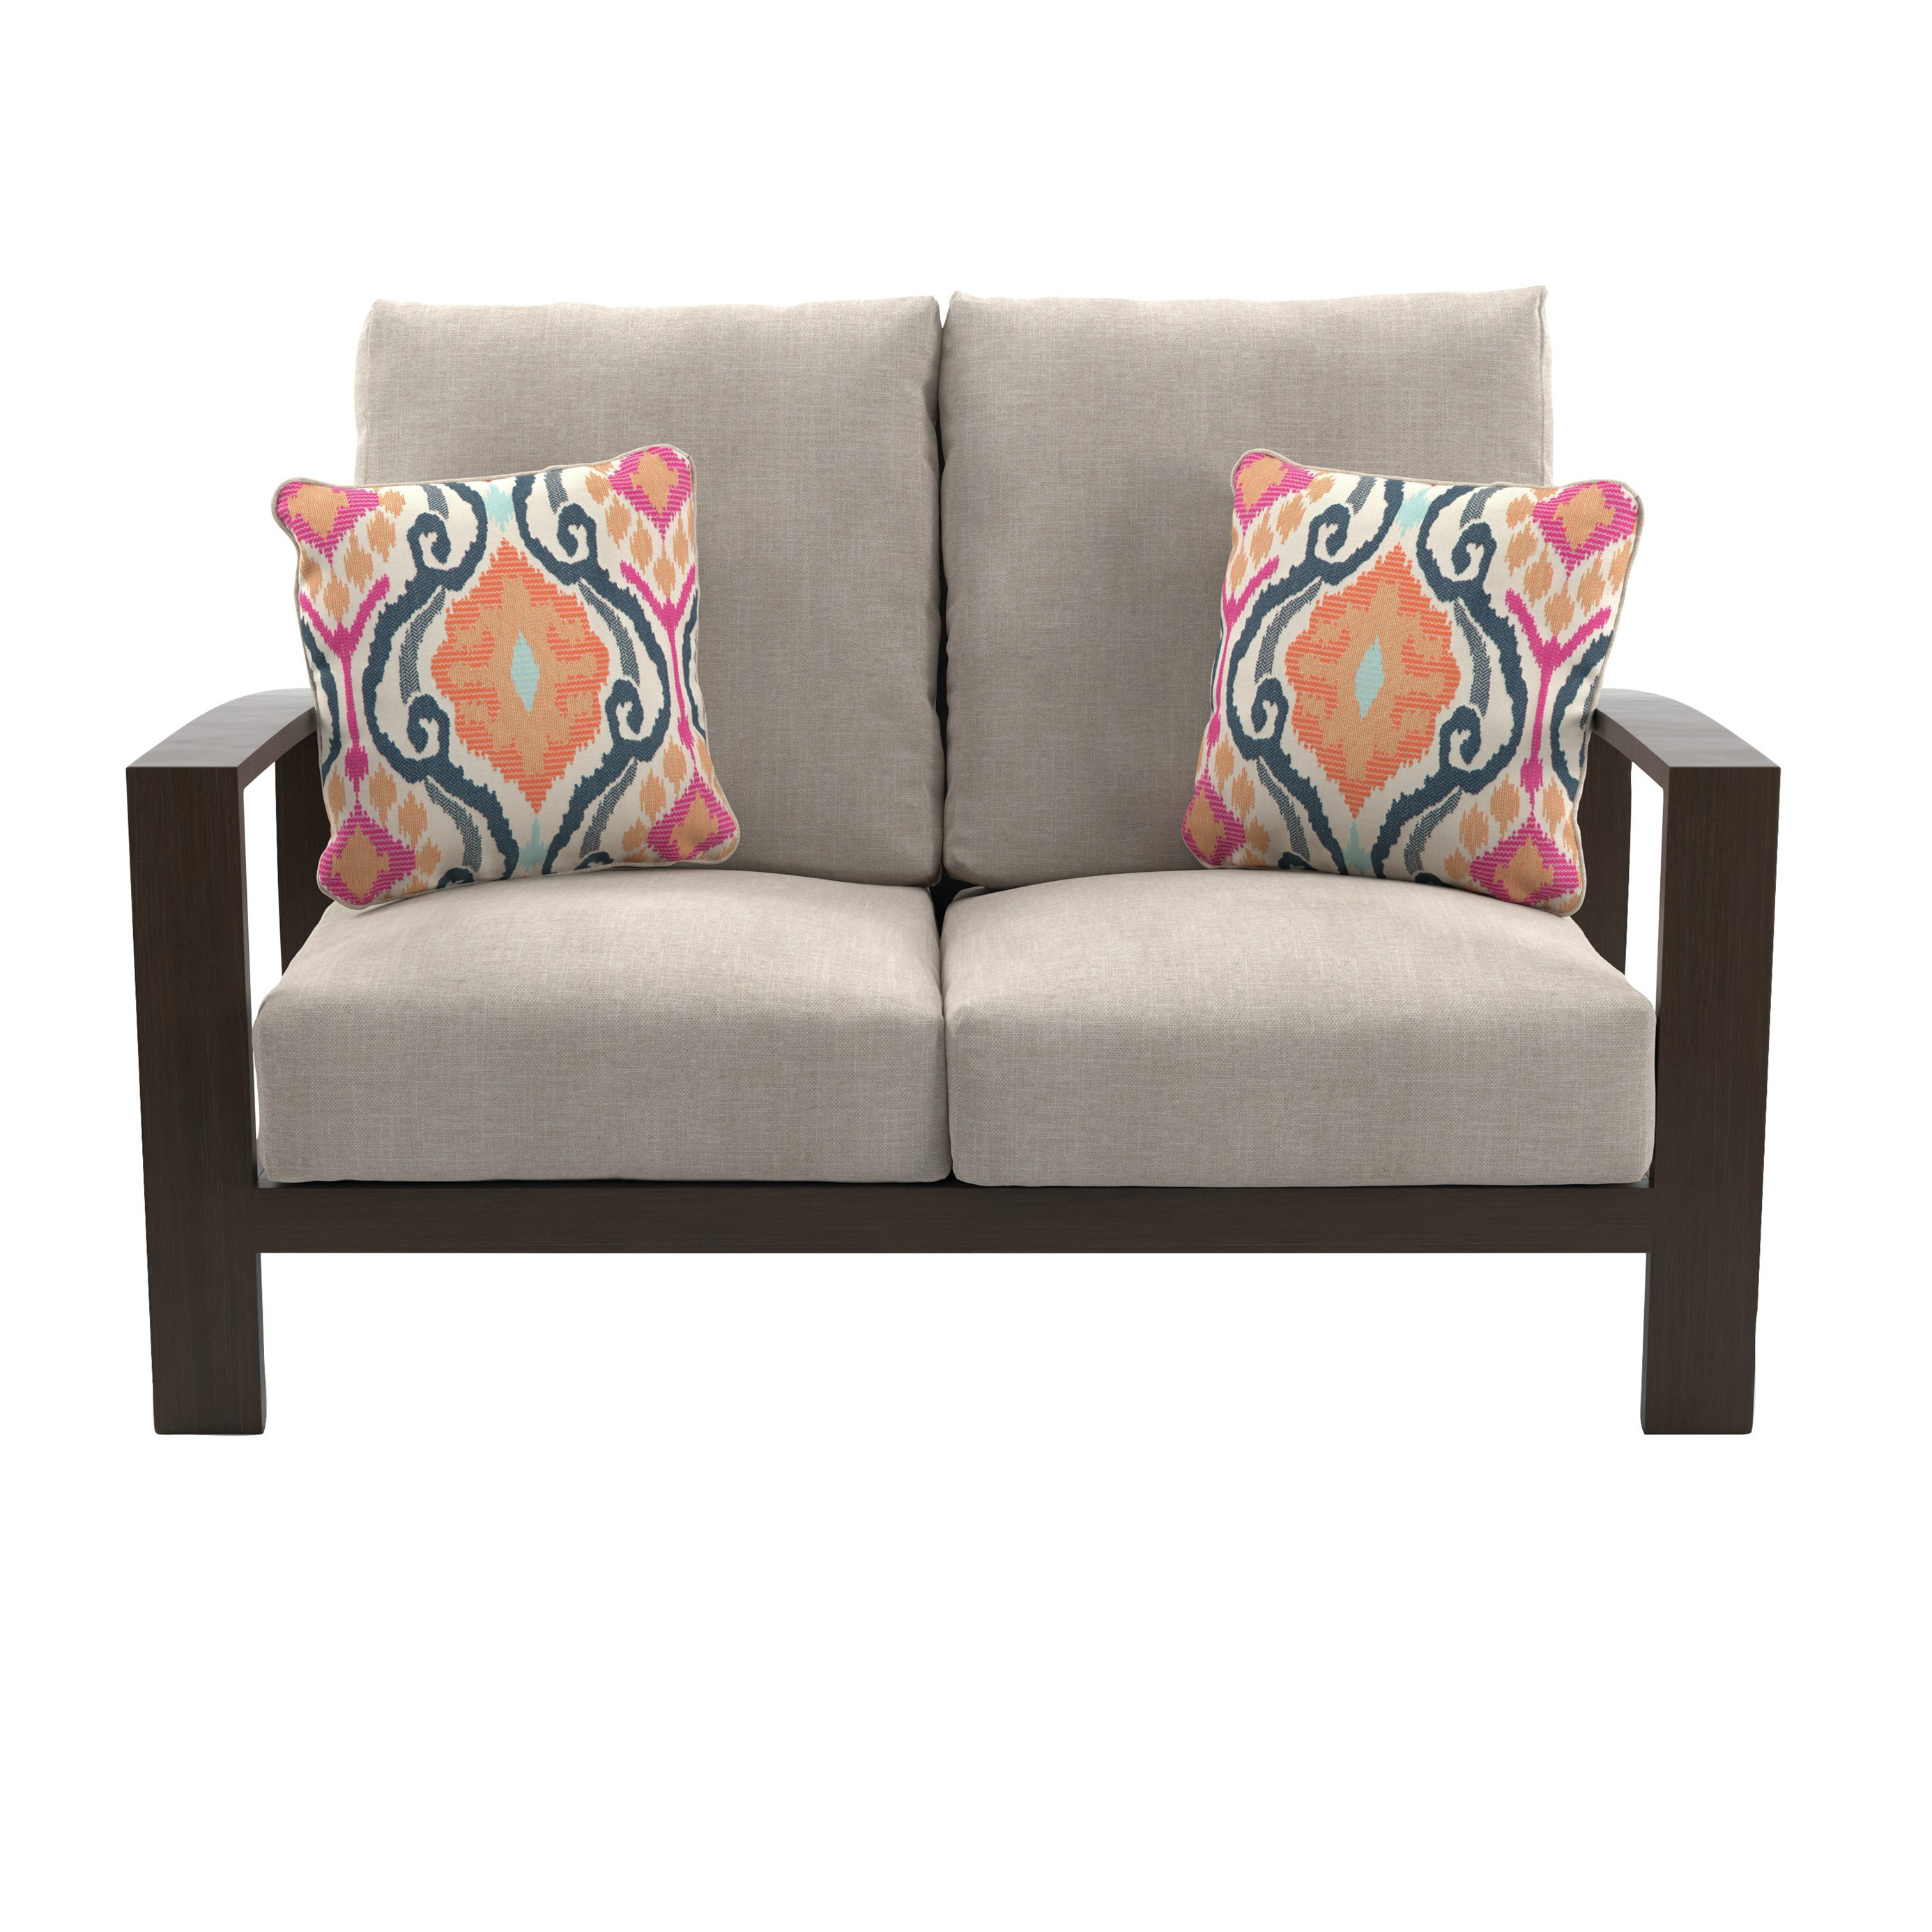 Jay Loveseat With Cushions Pertaining To Recent Bristol Loveseats With Cushions (View 11 of 20)